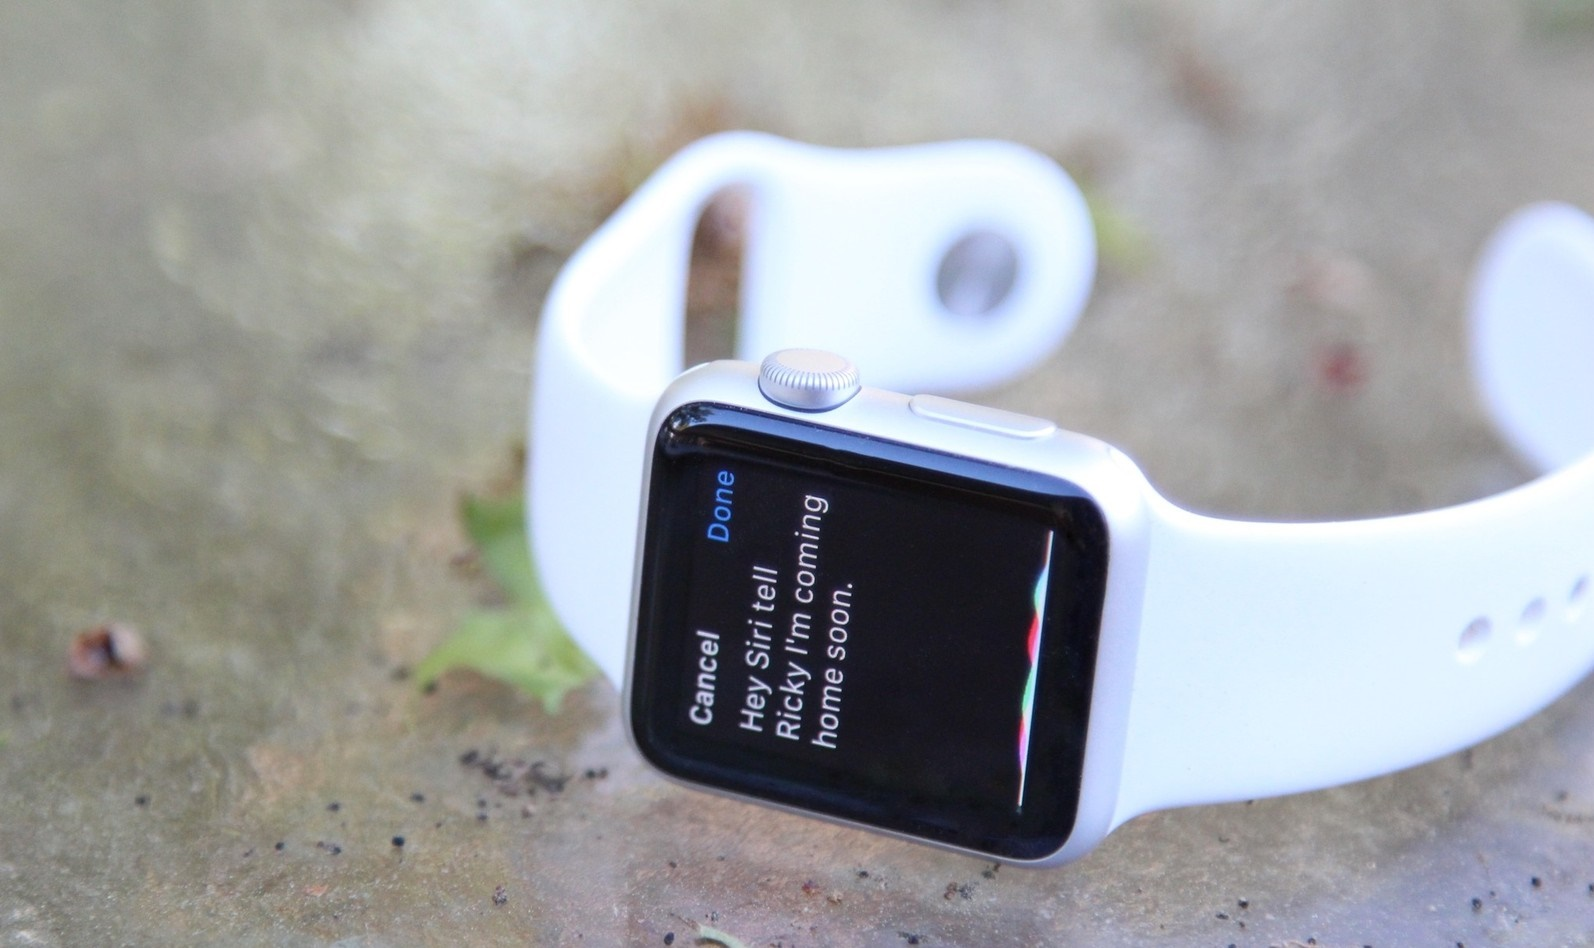 How to send message with Siri on Apple Watch